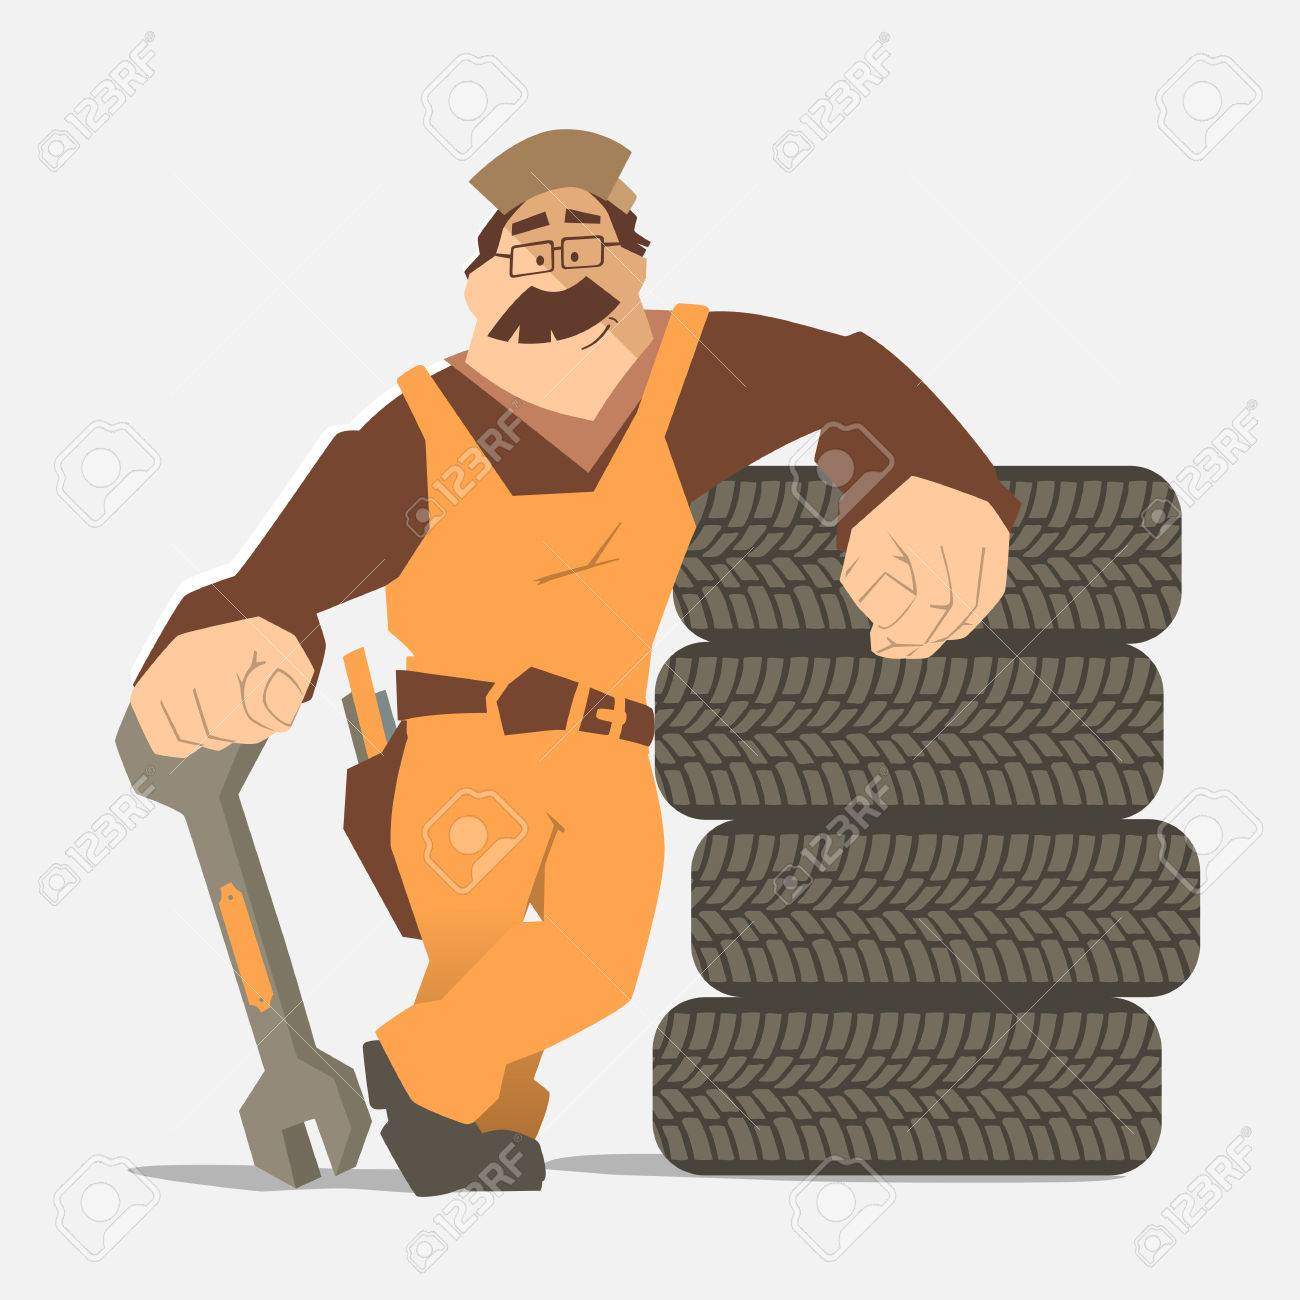 Strong smile man holding wrench and leaning on a stack of wheel. Car tire tyre service illustration. - 50570053